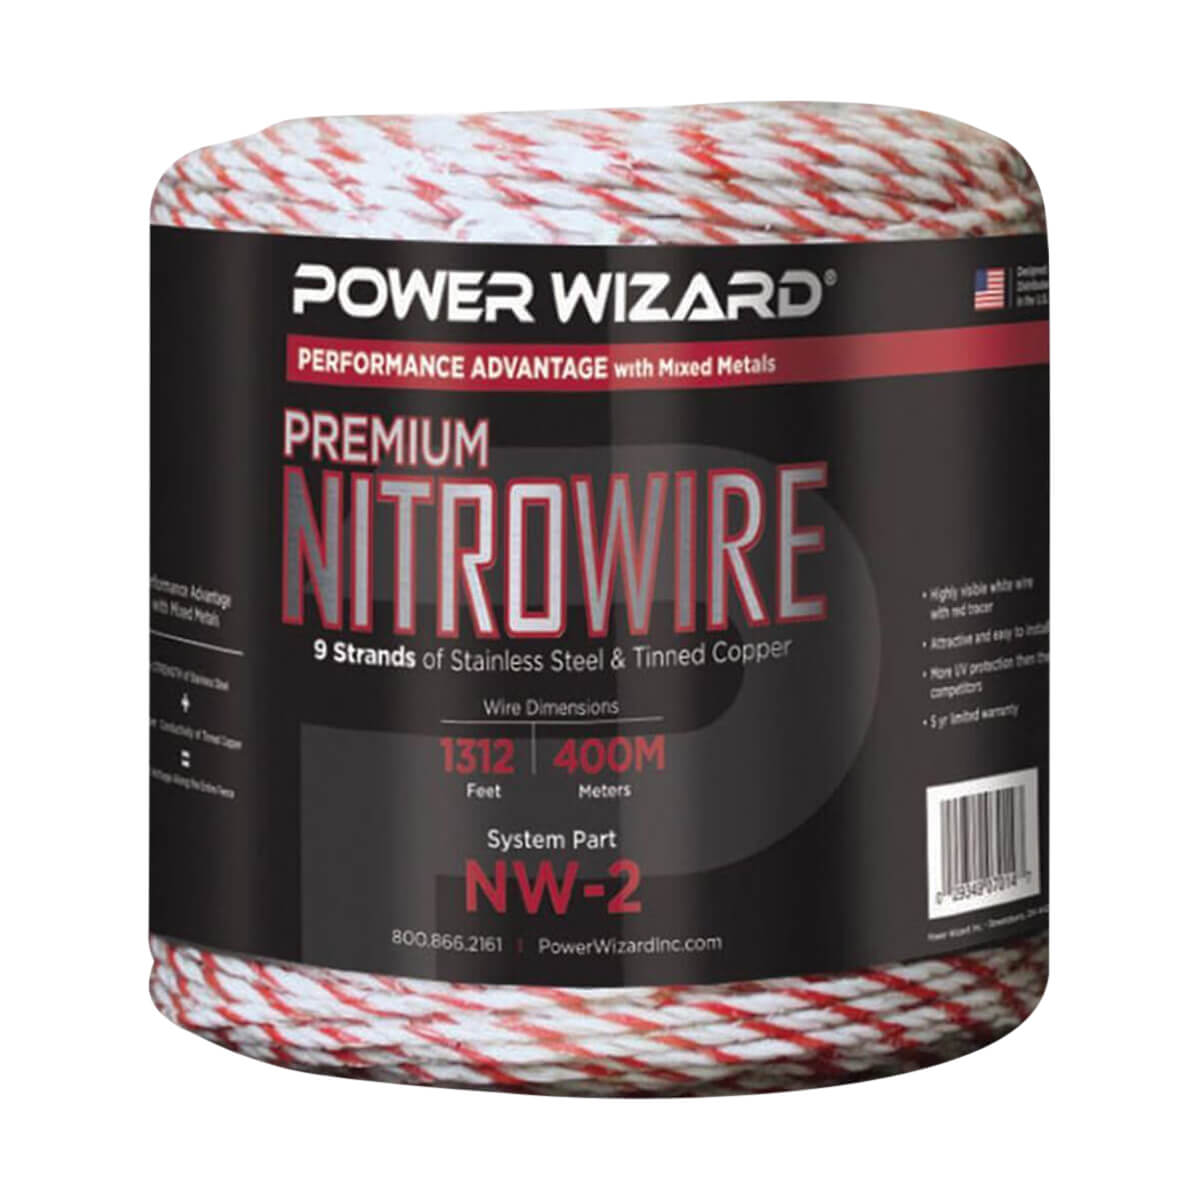 Power Wizard 400 m, 9 Strand Nitrowire - 1312 ft / 400 M